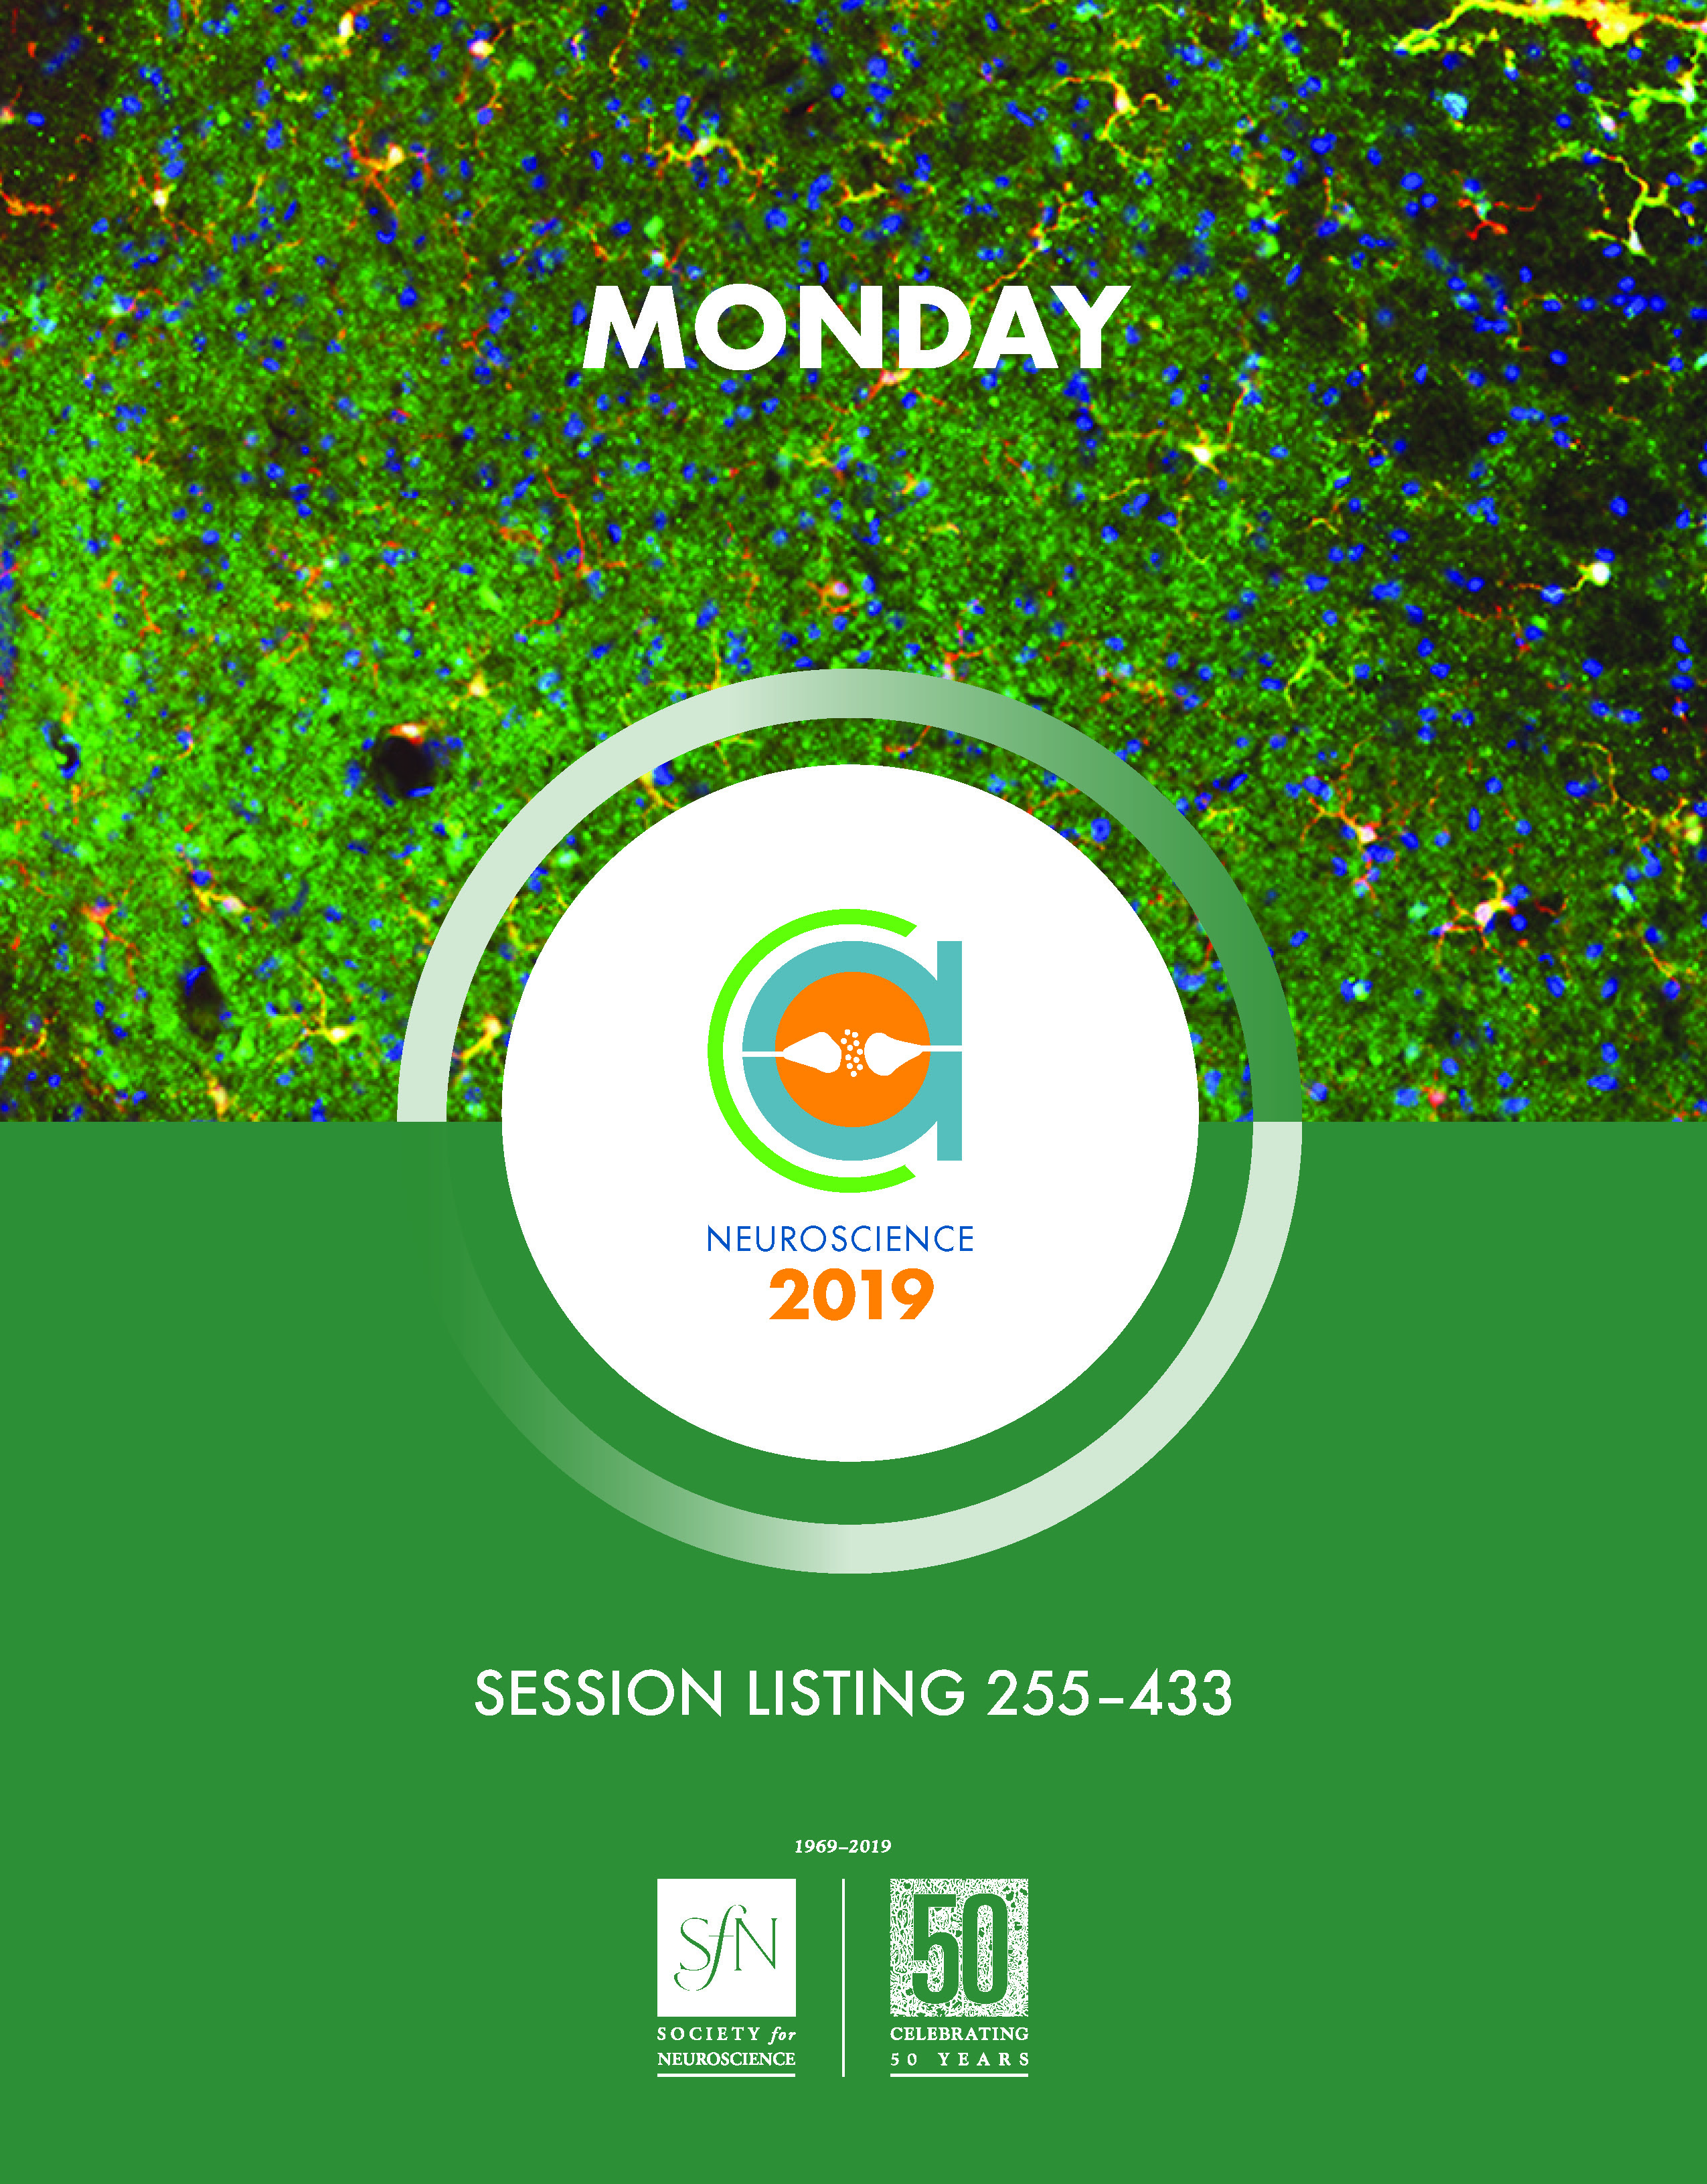 The cover of the Neuroscience 2019 final program day three book is shown here.